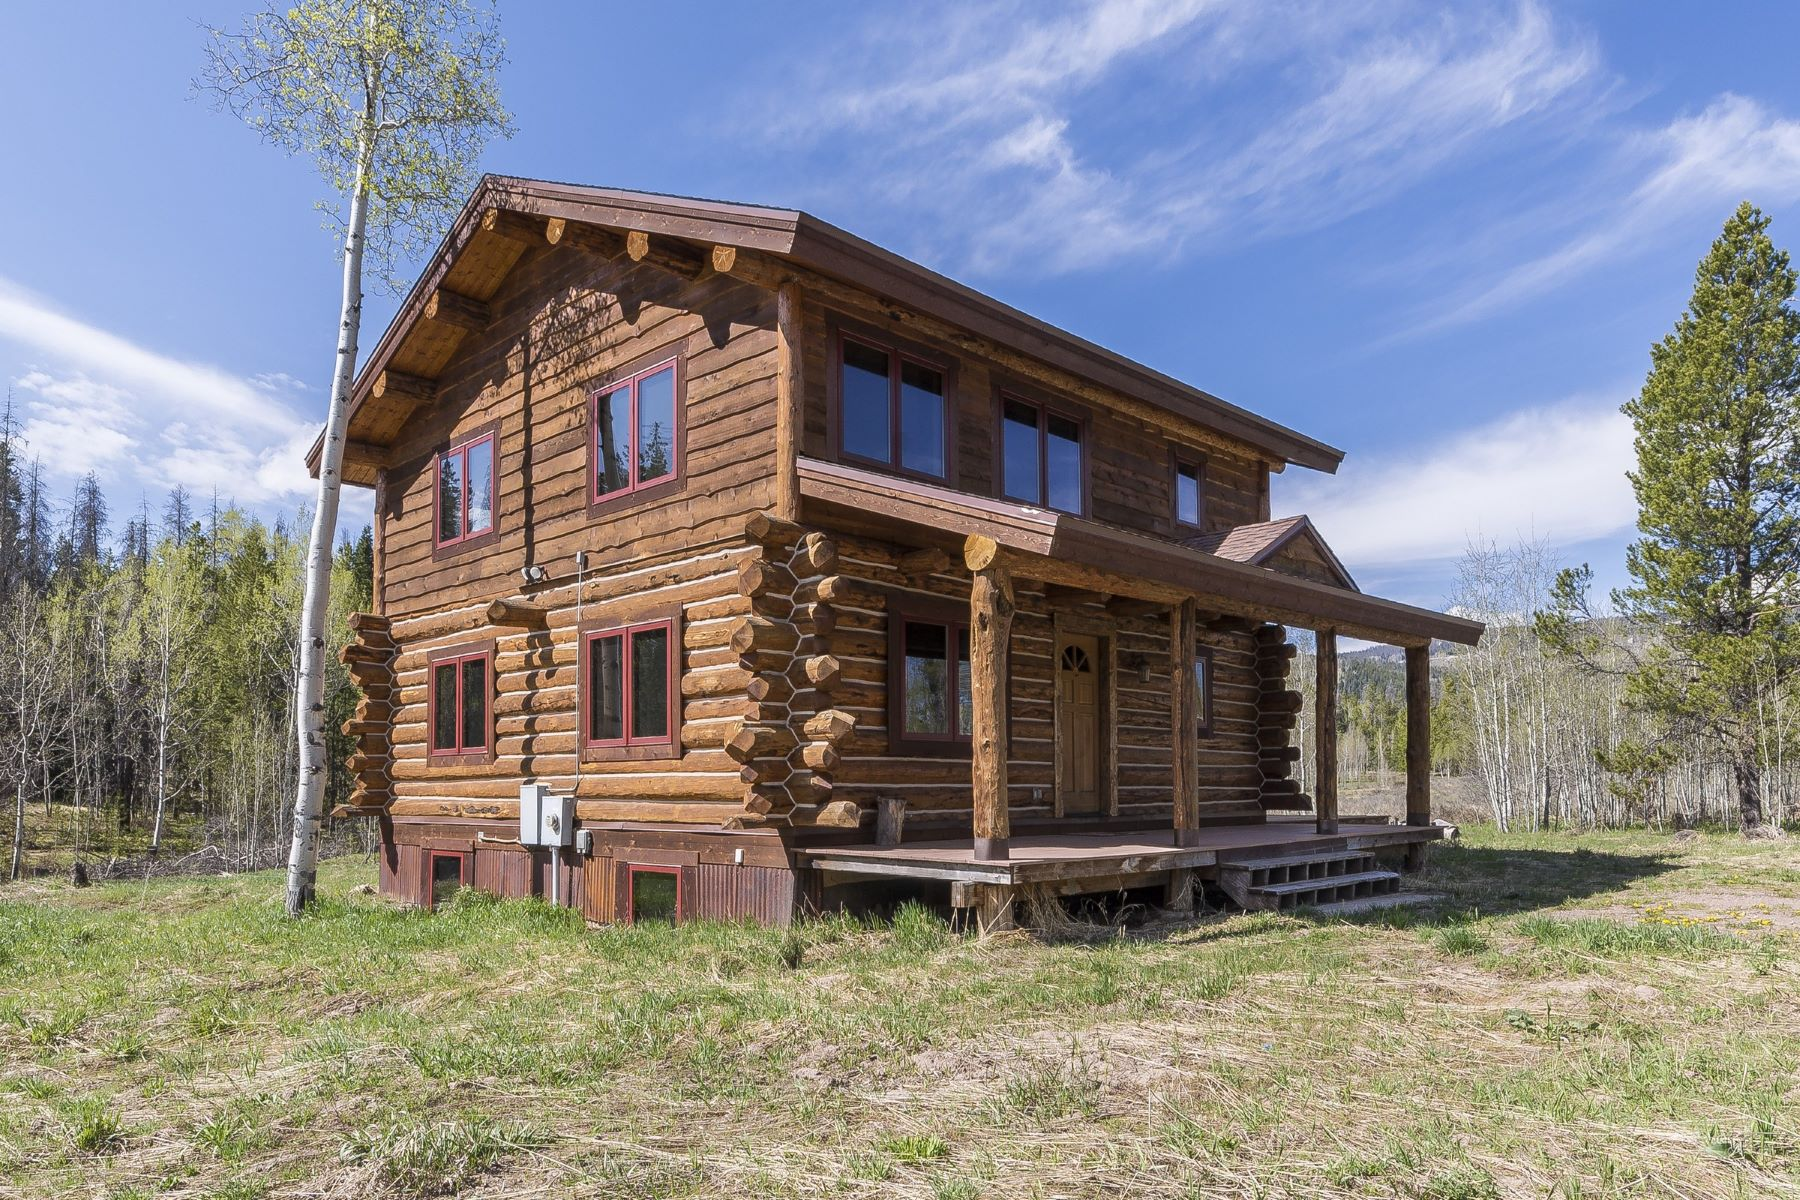 Casa Unifamiliar por un Venta en Stagecoach Log Cabin 21015 Palomino Way Oak Creek, Colorado, 80467 Estados Unidos